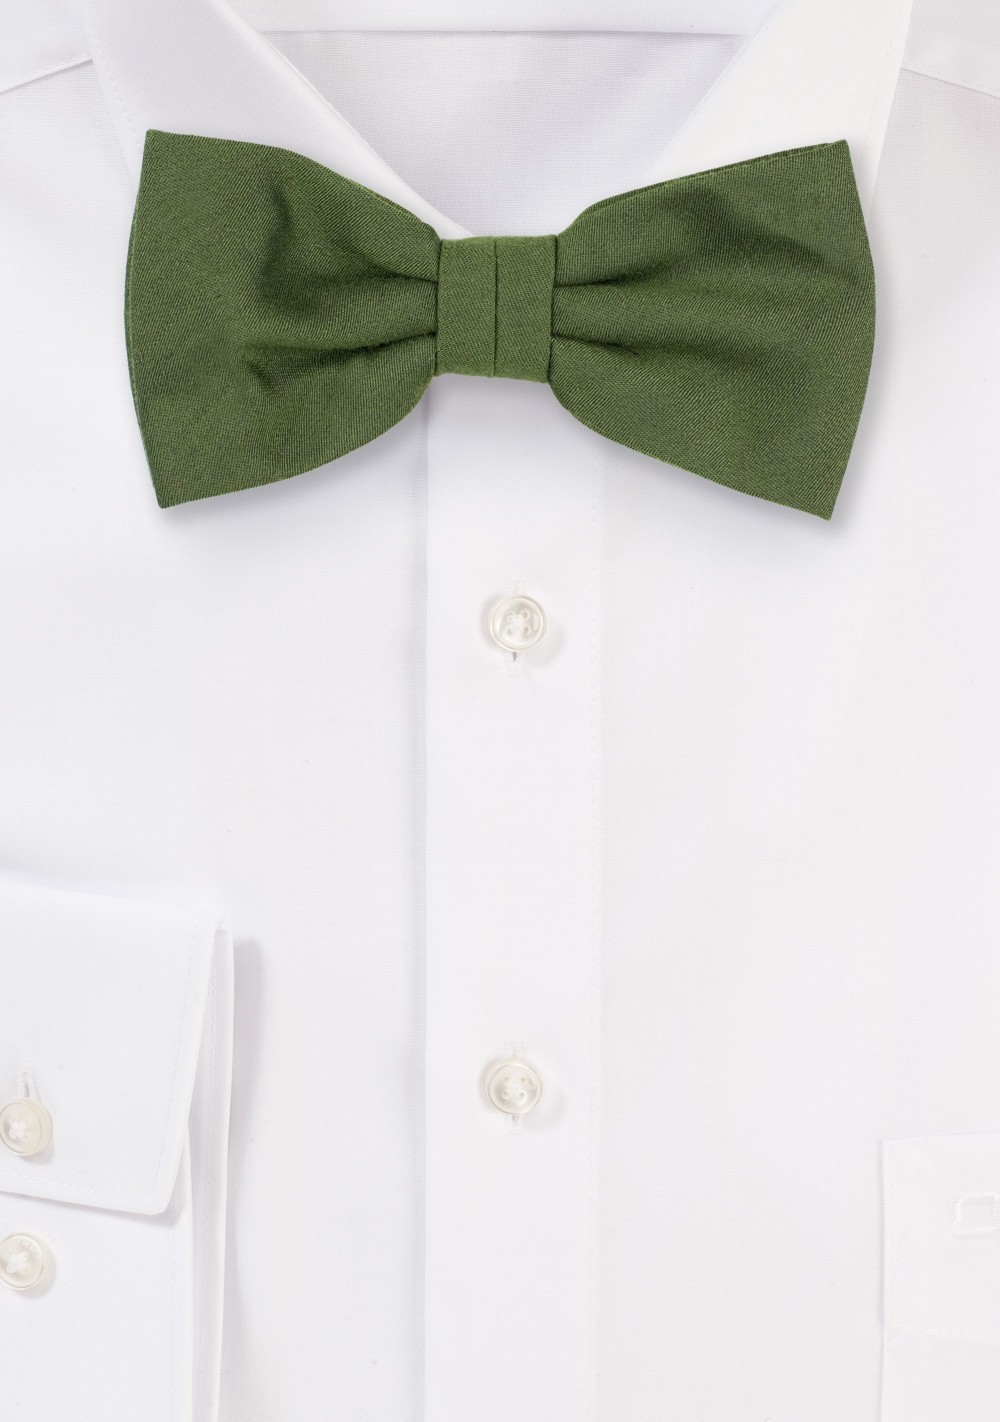 Woolen Bow Tie in Olive Green